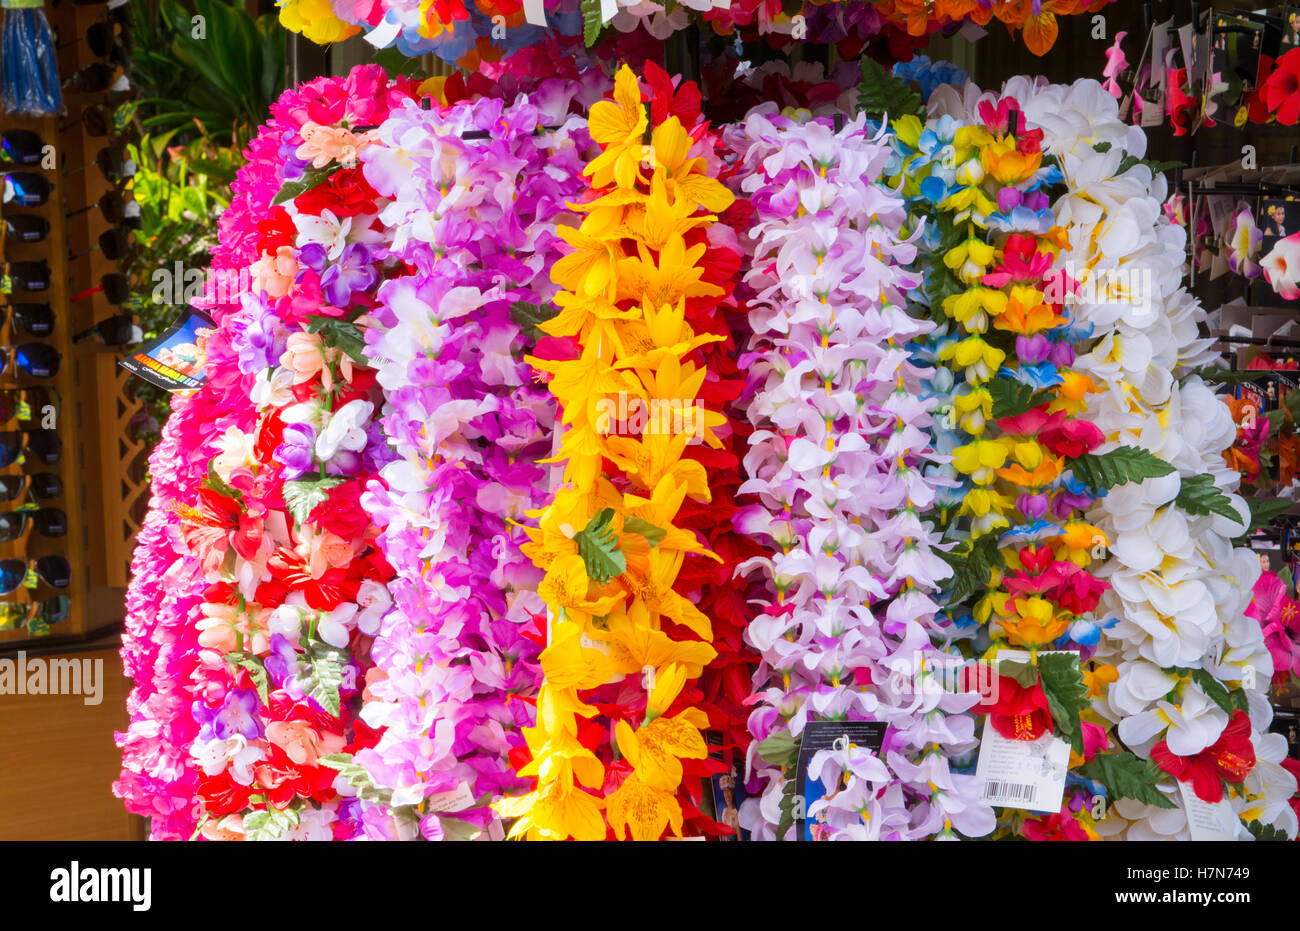 Laie hawaii polynesian cultural center leis for sale flowers laie hawaii polynesian cultural center leis for sale flowers colorful izmirmasajfo